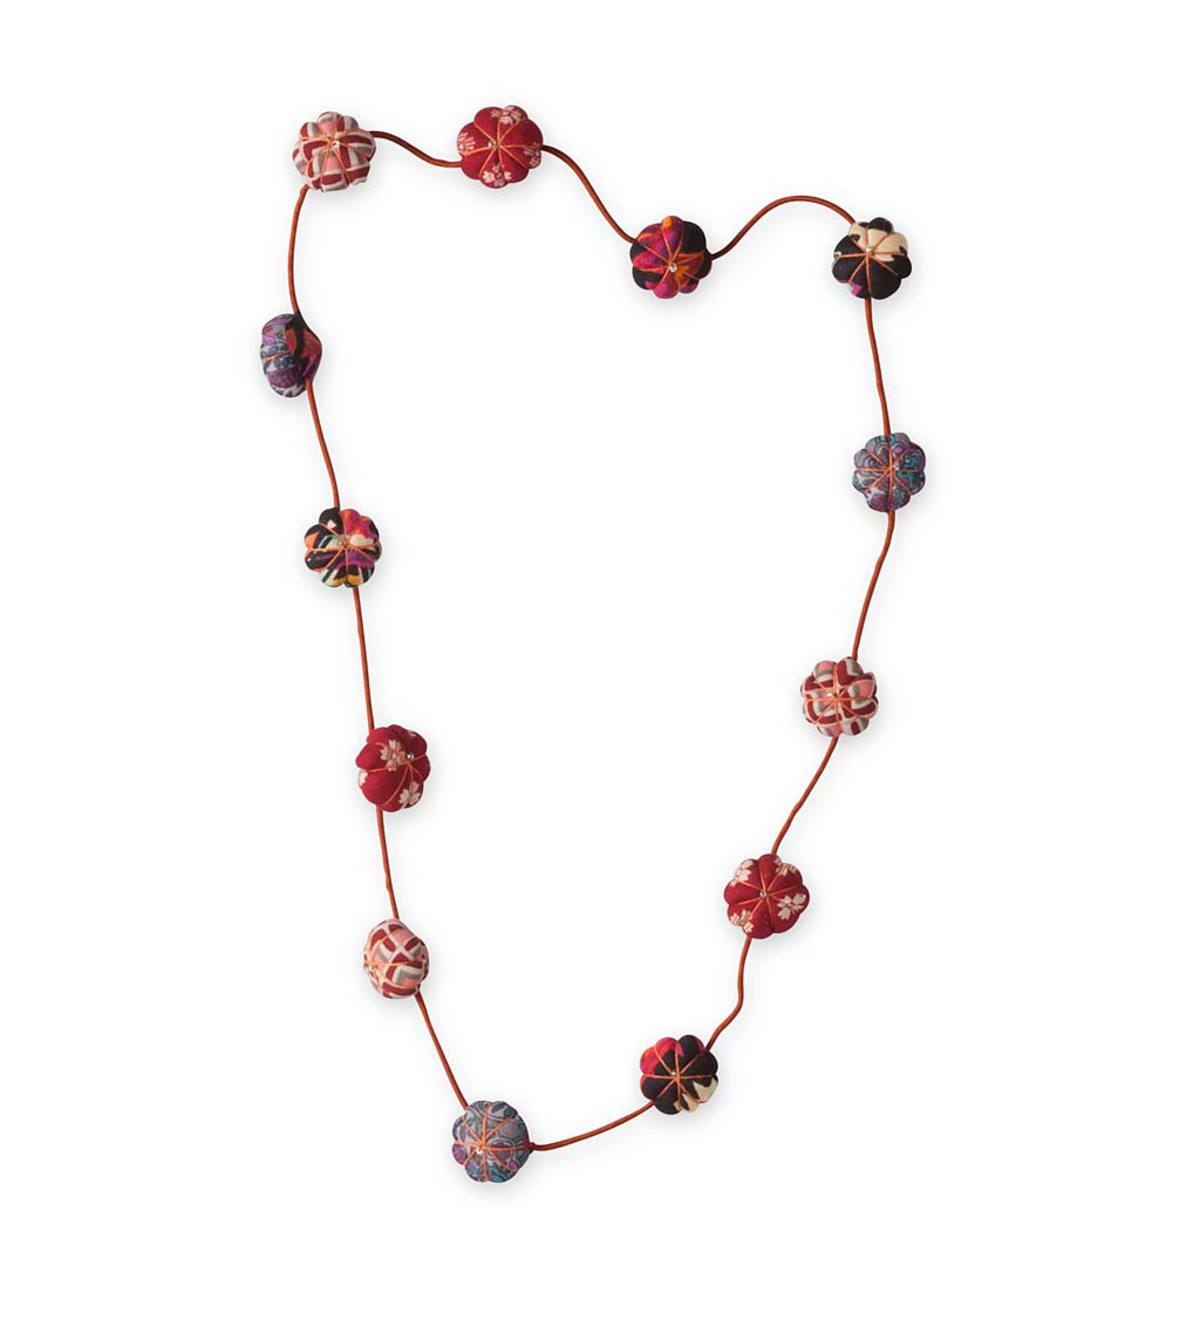 Fabric Beads Necklace - RD